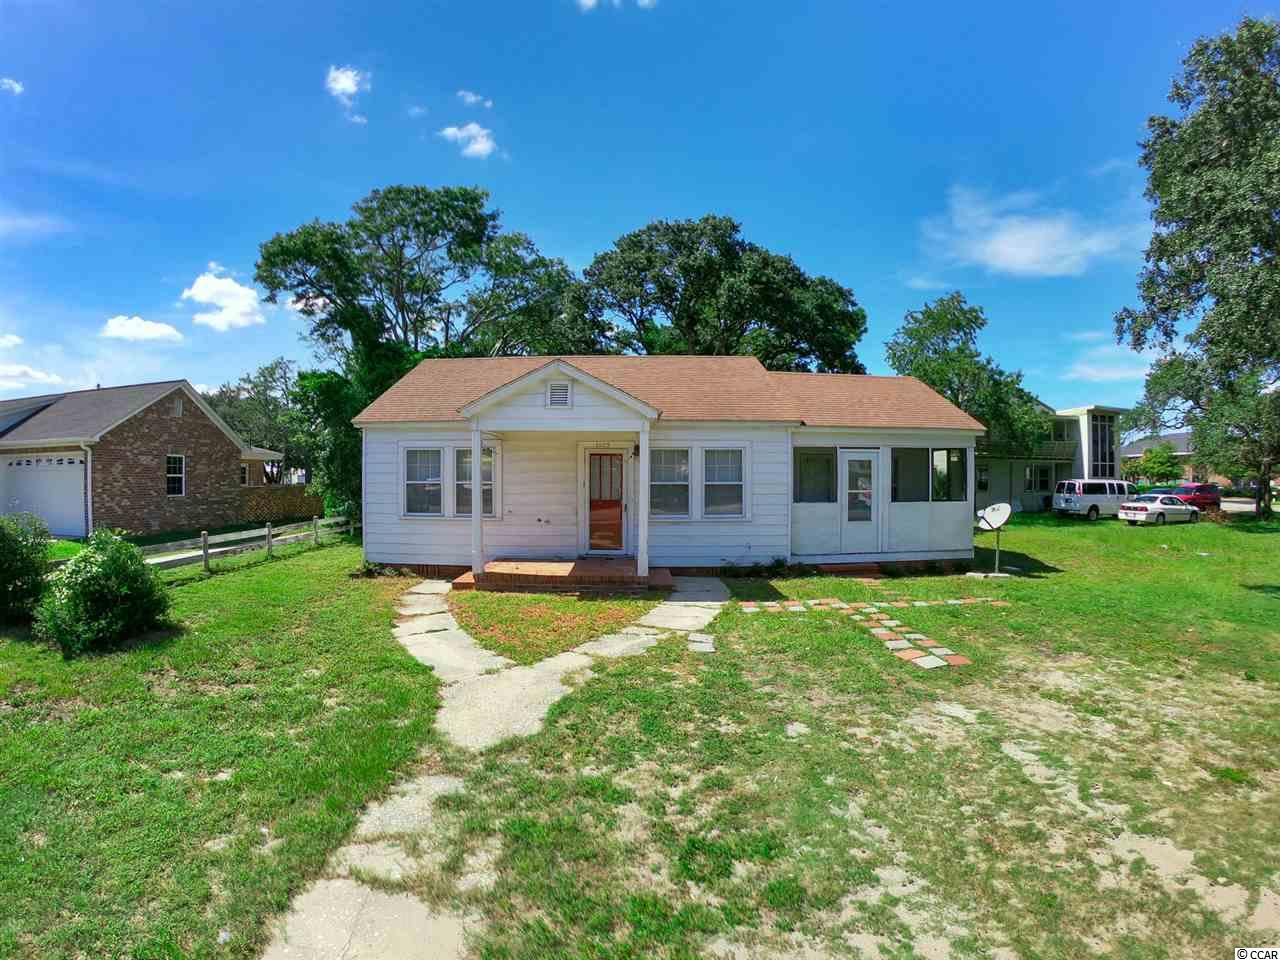 This amazing home is located just a short walk to the ocean and Myrtle Beach Skywheel. Right in the heart of Myrtle Beach, this 1/4 acre corner lot is close to all of the attractions including restaurants, amusement, and of course the beach! Inside you'll find fresh laminate flooring, and a split bedroom floor plan with a large master bedroom. Enjoy the ocean breeze from your screened porch off the master bedroom. A jack & jill setup for the guest bedrooms is perfect for visitors. This could make a great vacation home, investment property- and with the commercial zoning you could turn this large lot into a business opportunity. This is an excellent chance to own a piece of the beach!